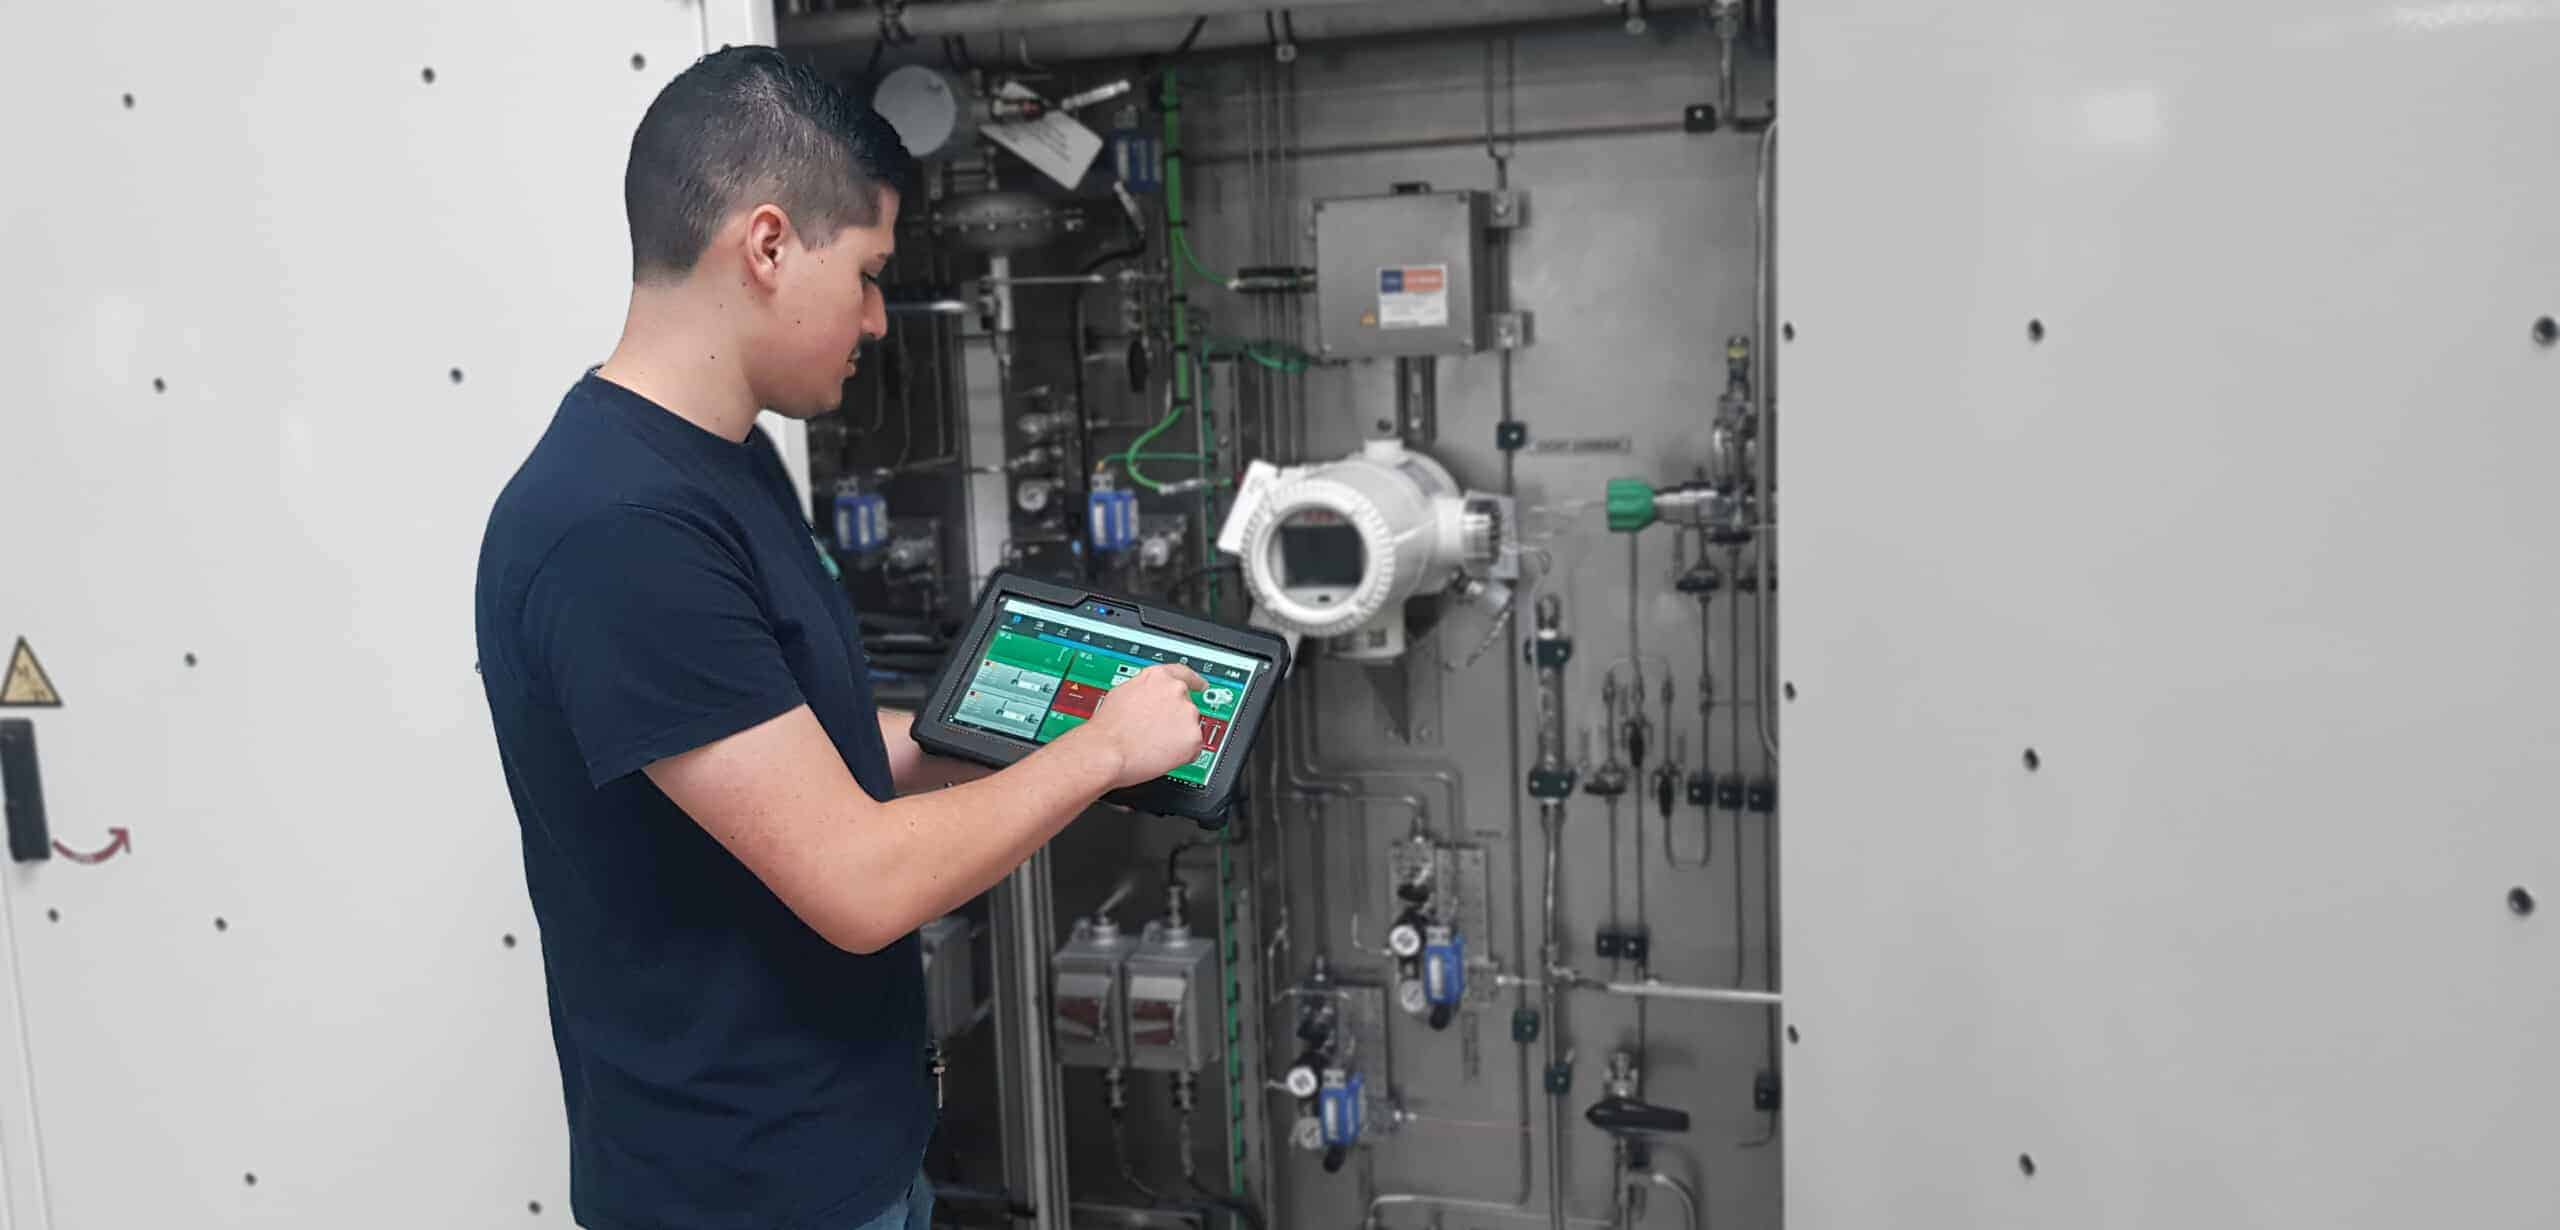 LNG Sampler predictive maintenance and operation with AIM